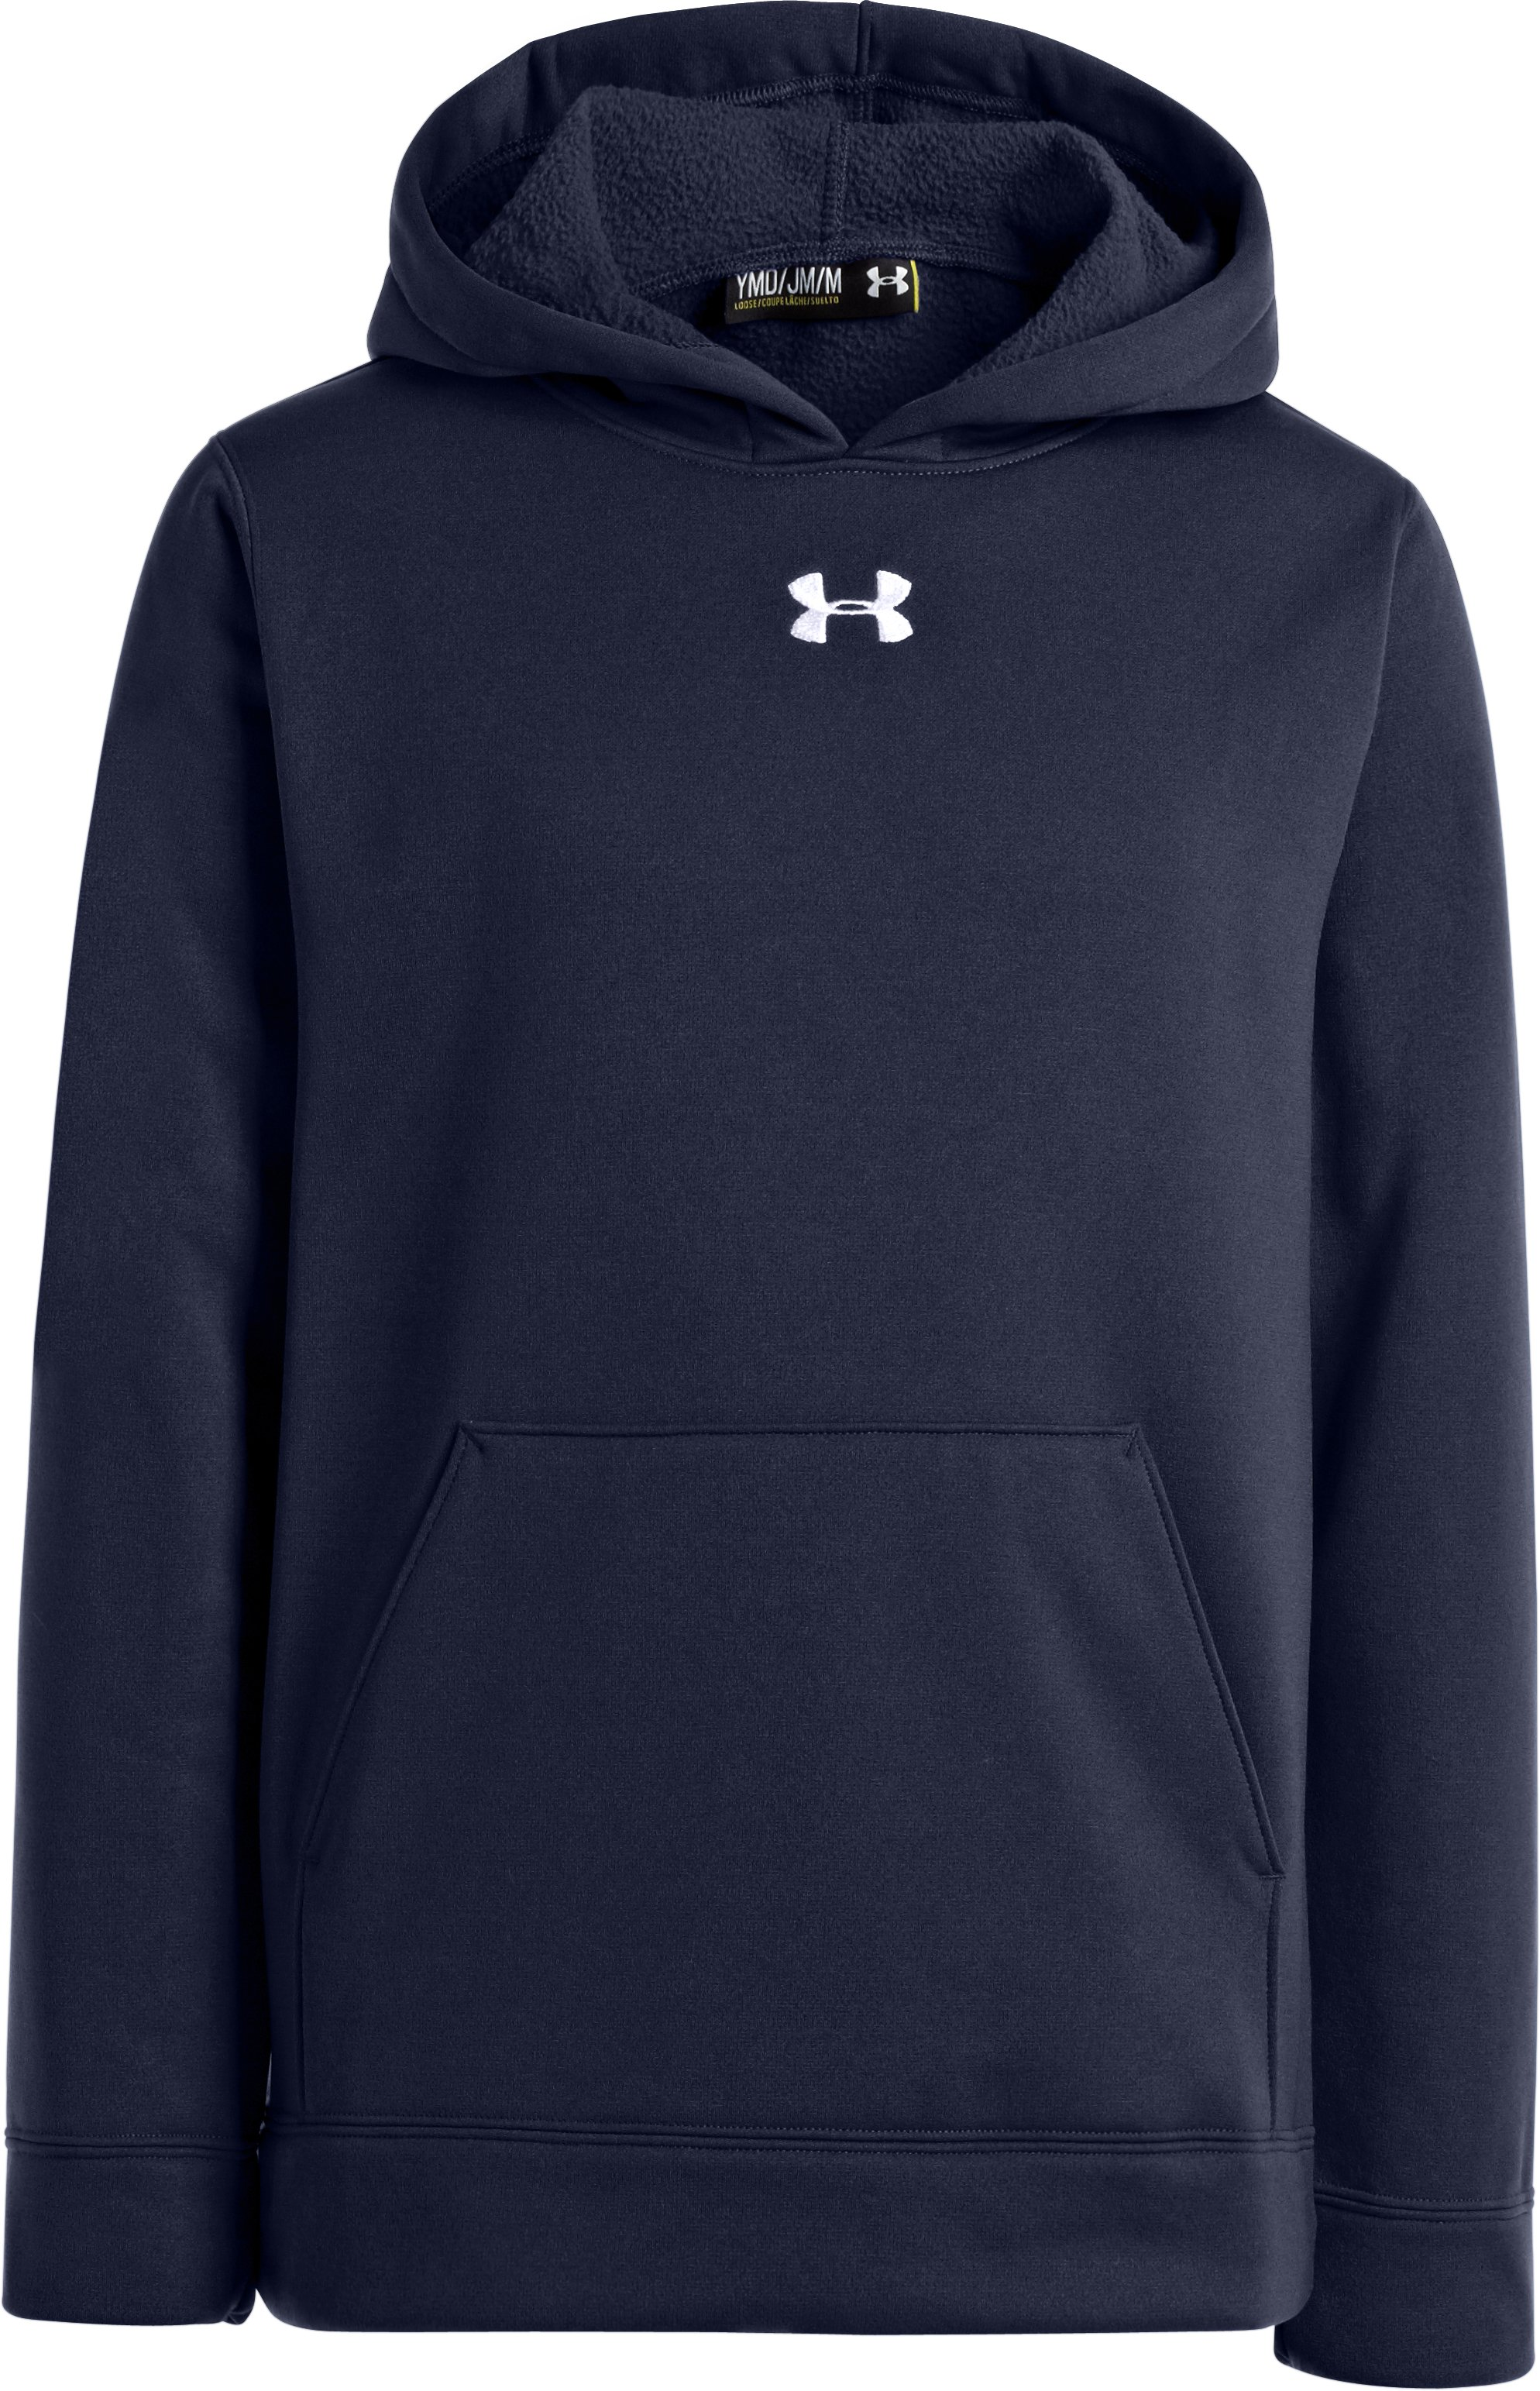 Boys' Armour® Fleece Storm Team Hoodie, Midnight Navy